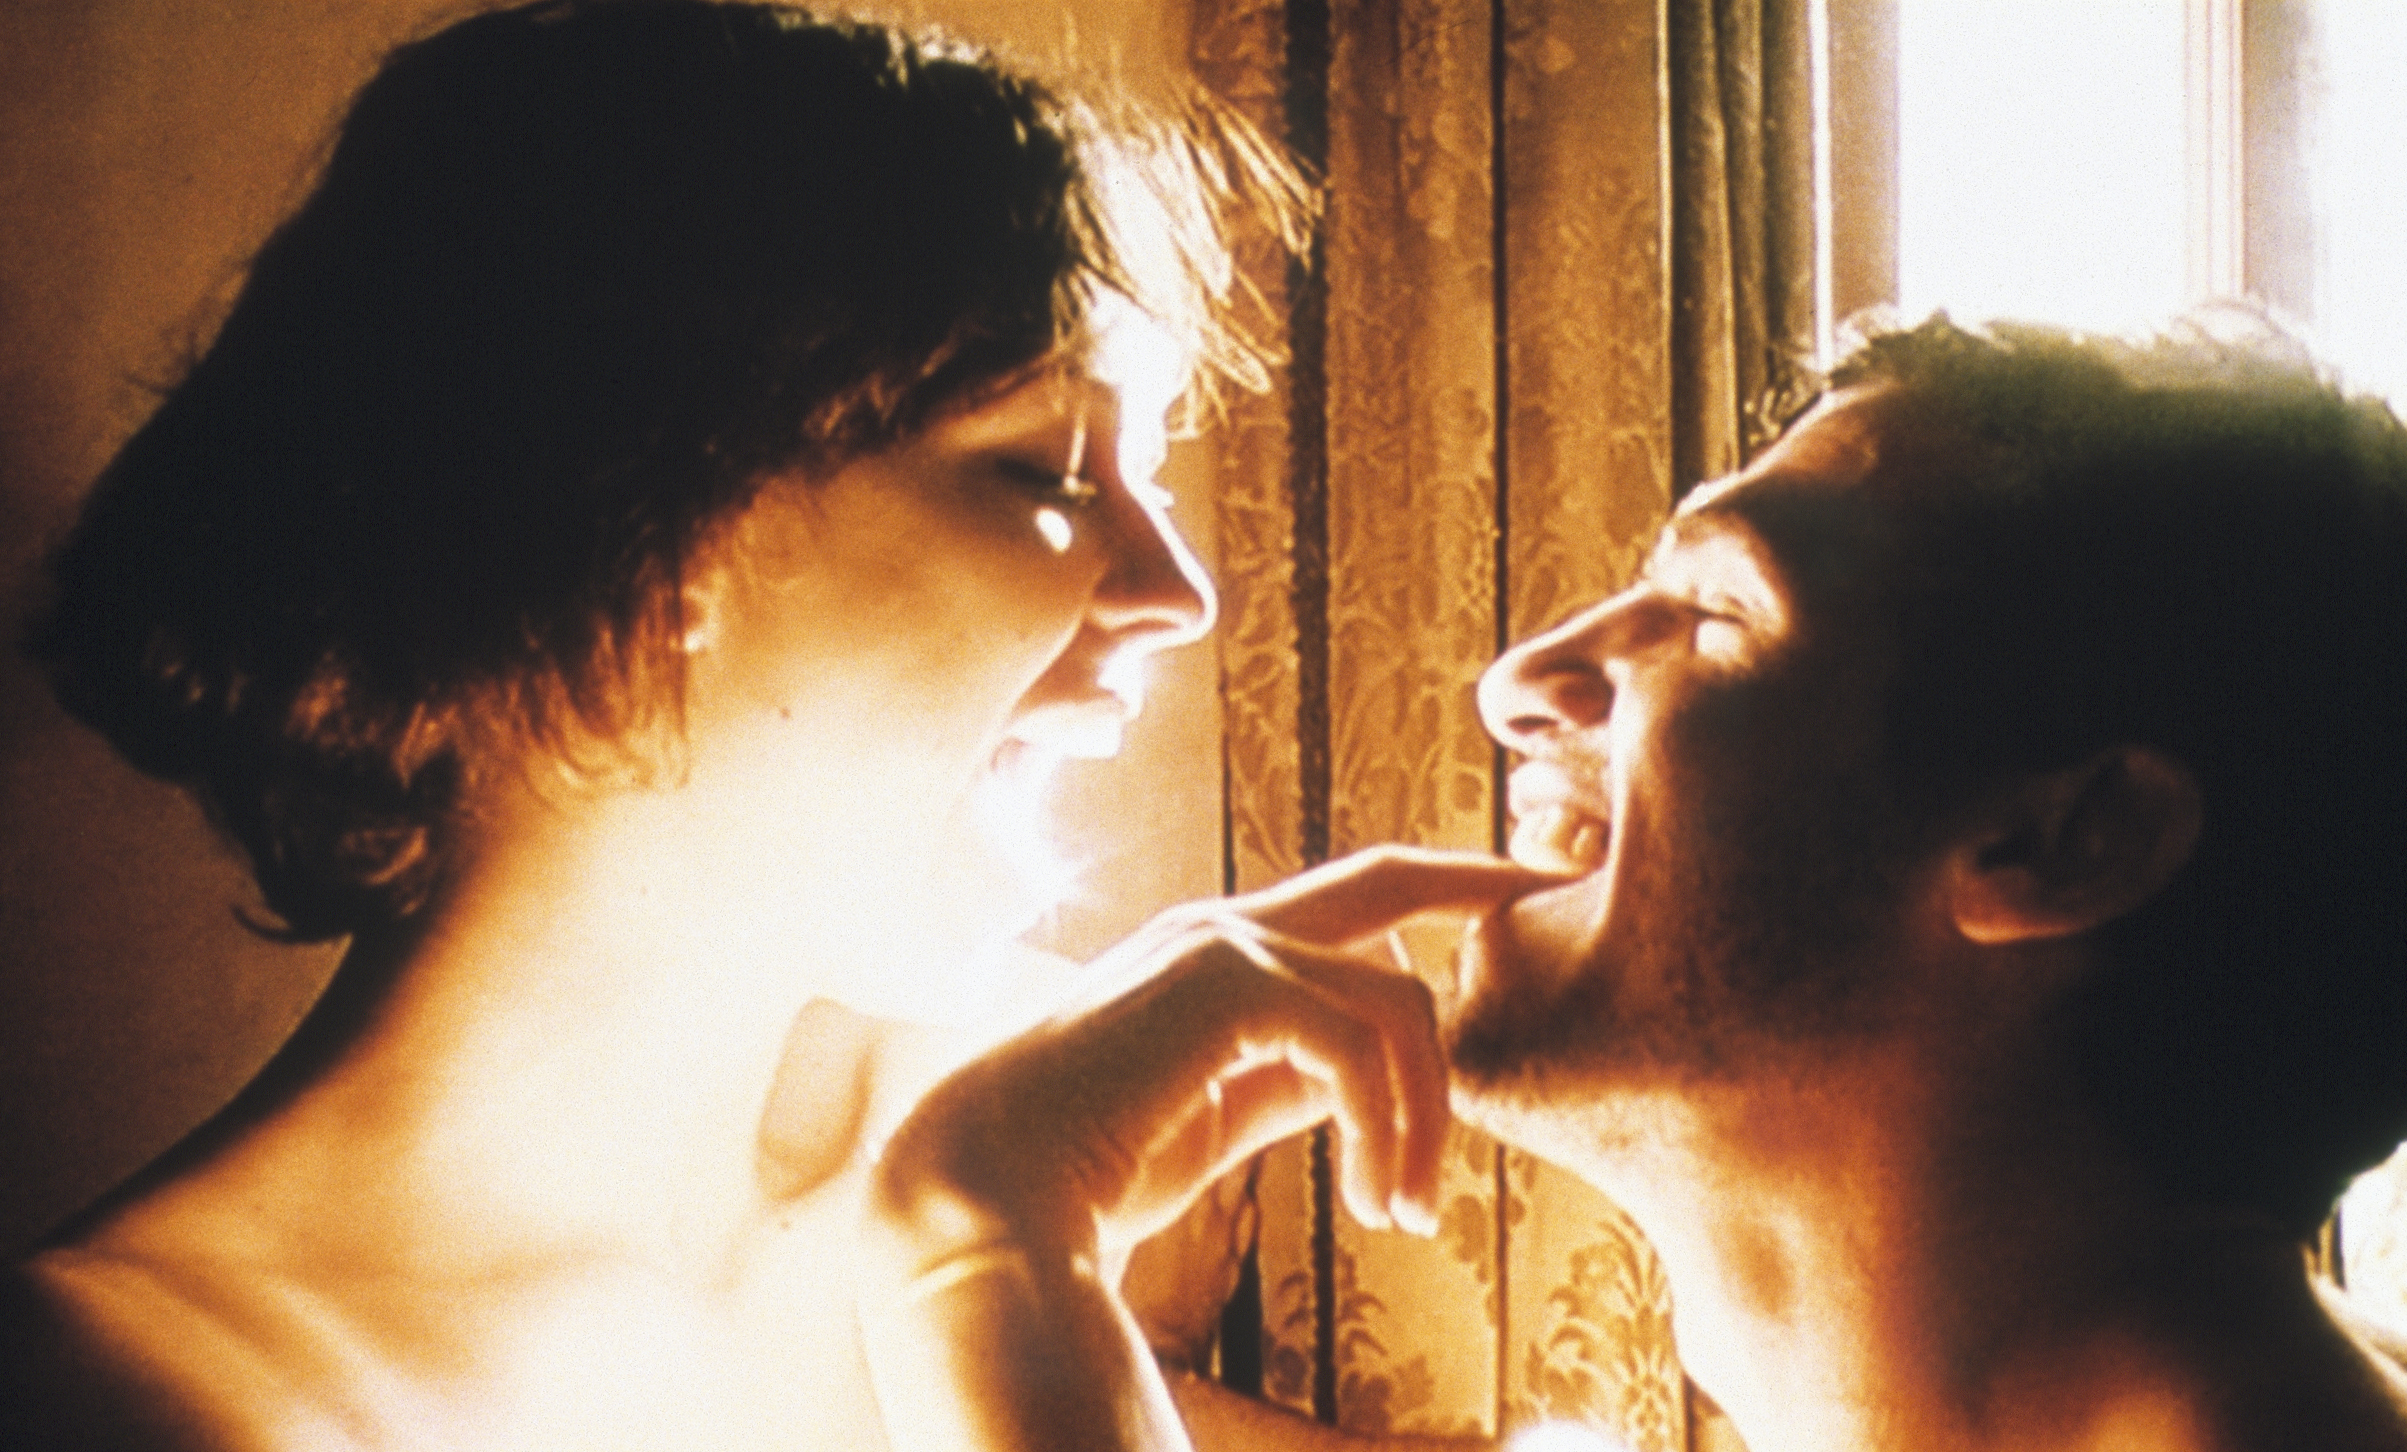 21 movies with unsimulated sex